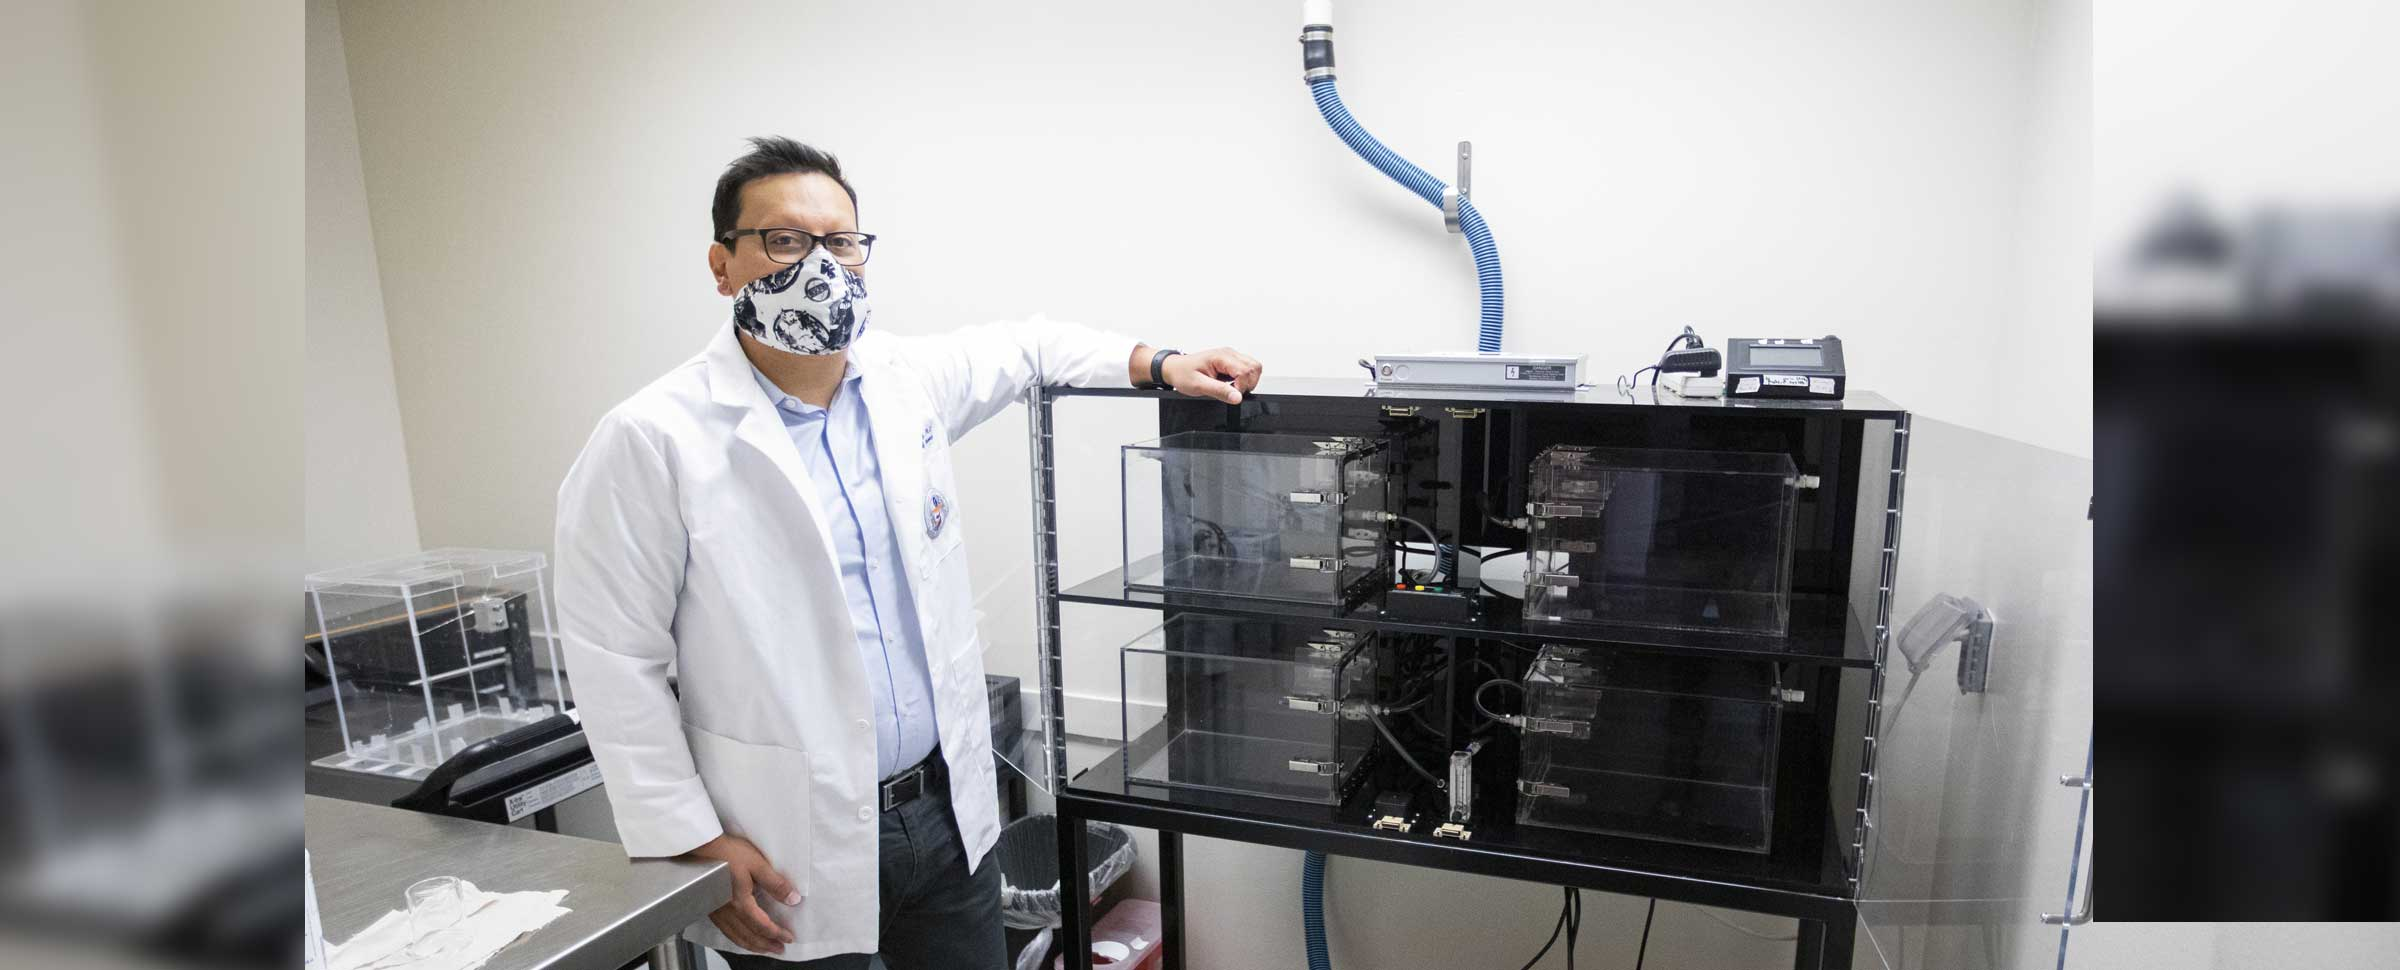 UTEP Study to Examine the Effects of Vaping on the Brain and Behavior